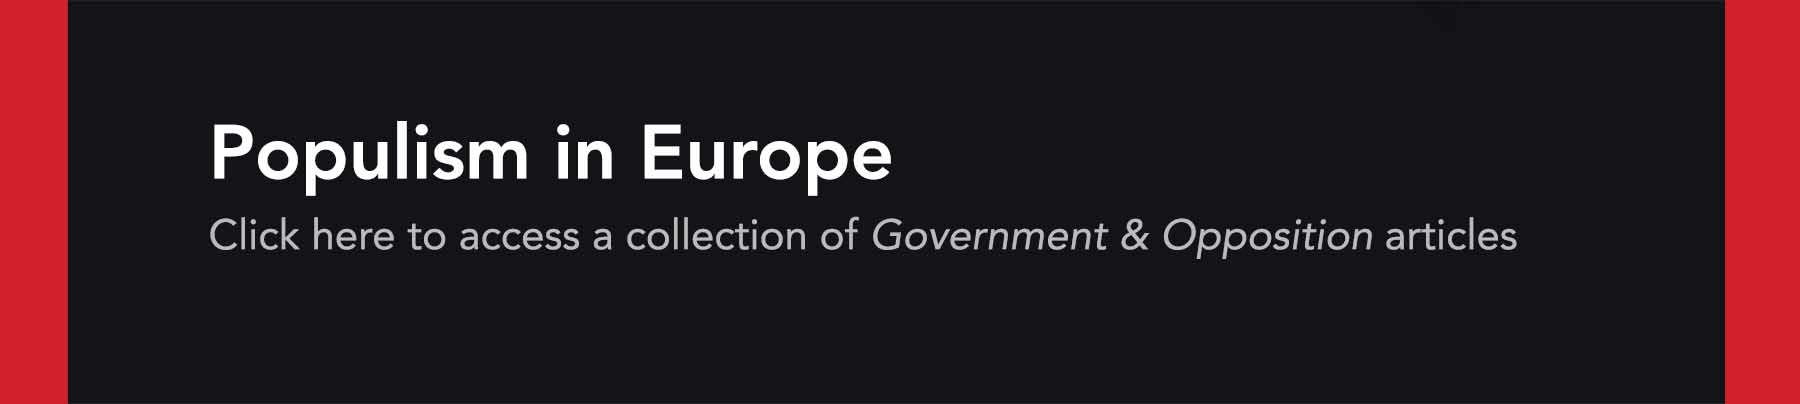 Populism in Europe collection banner